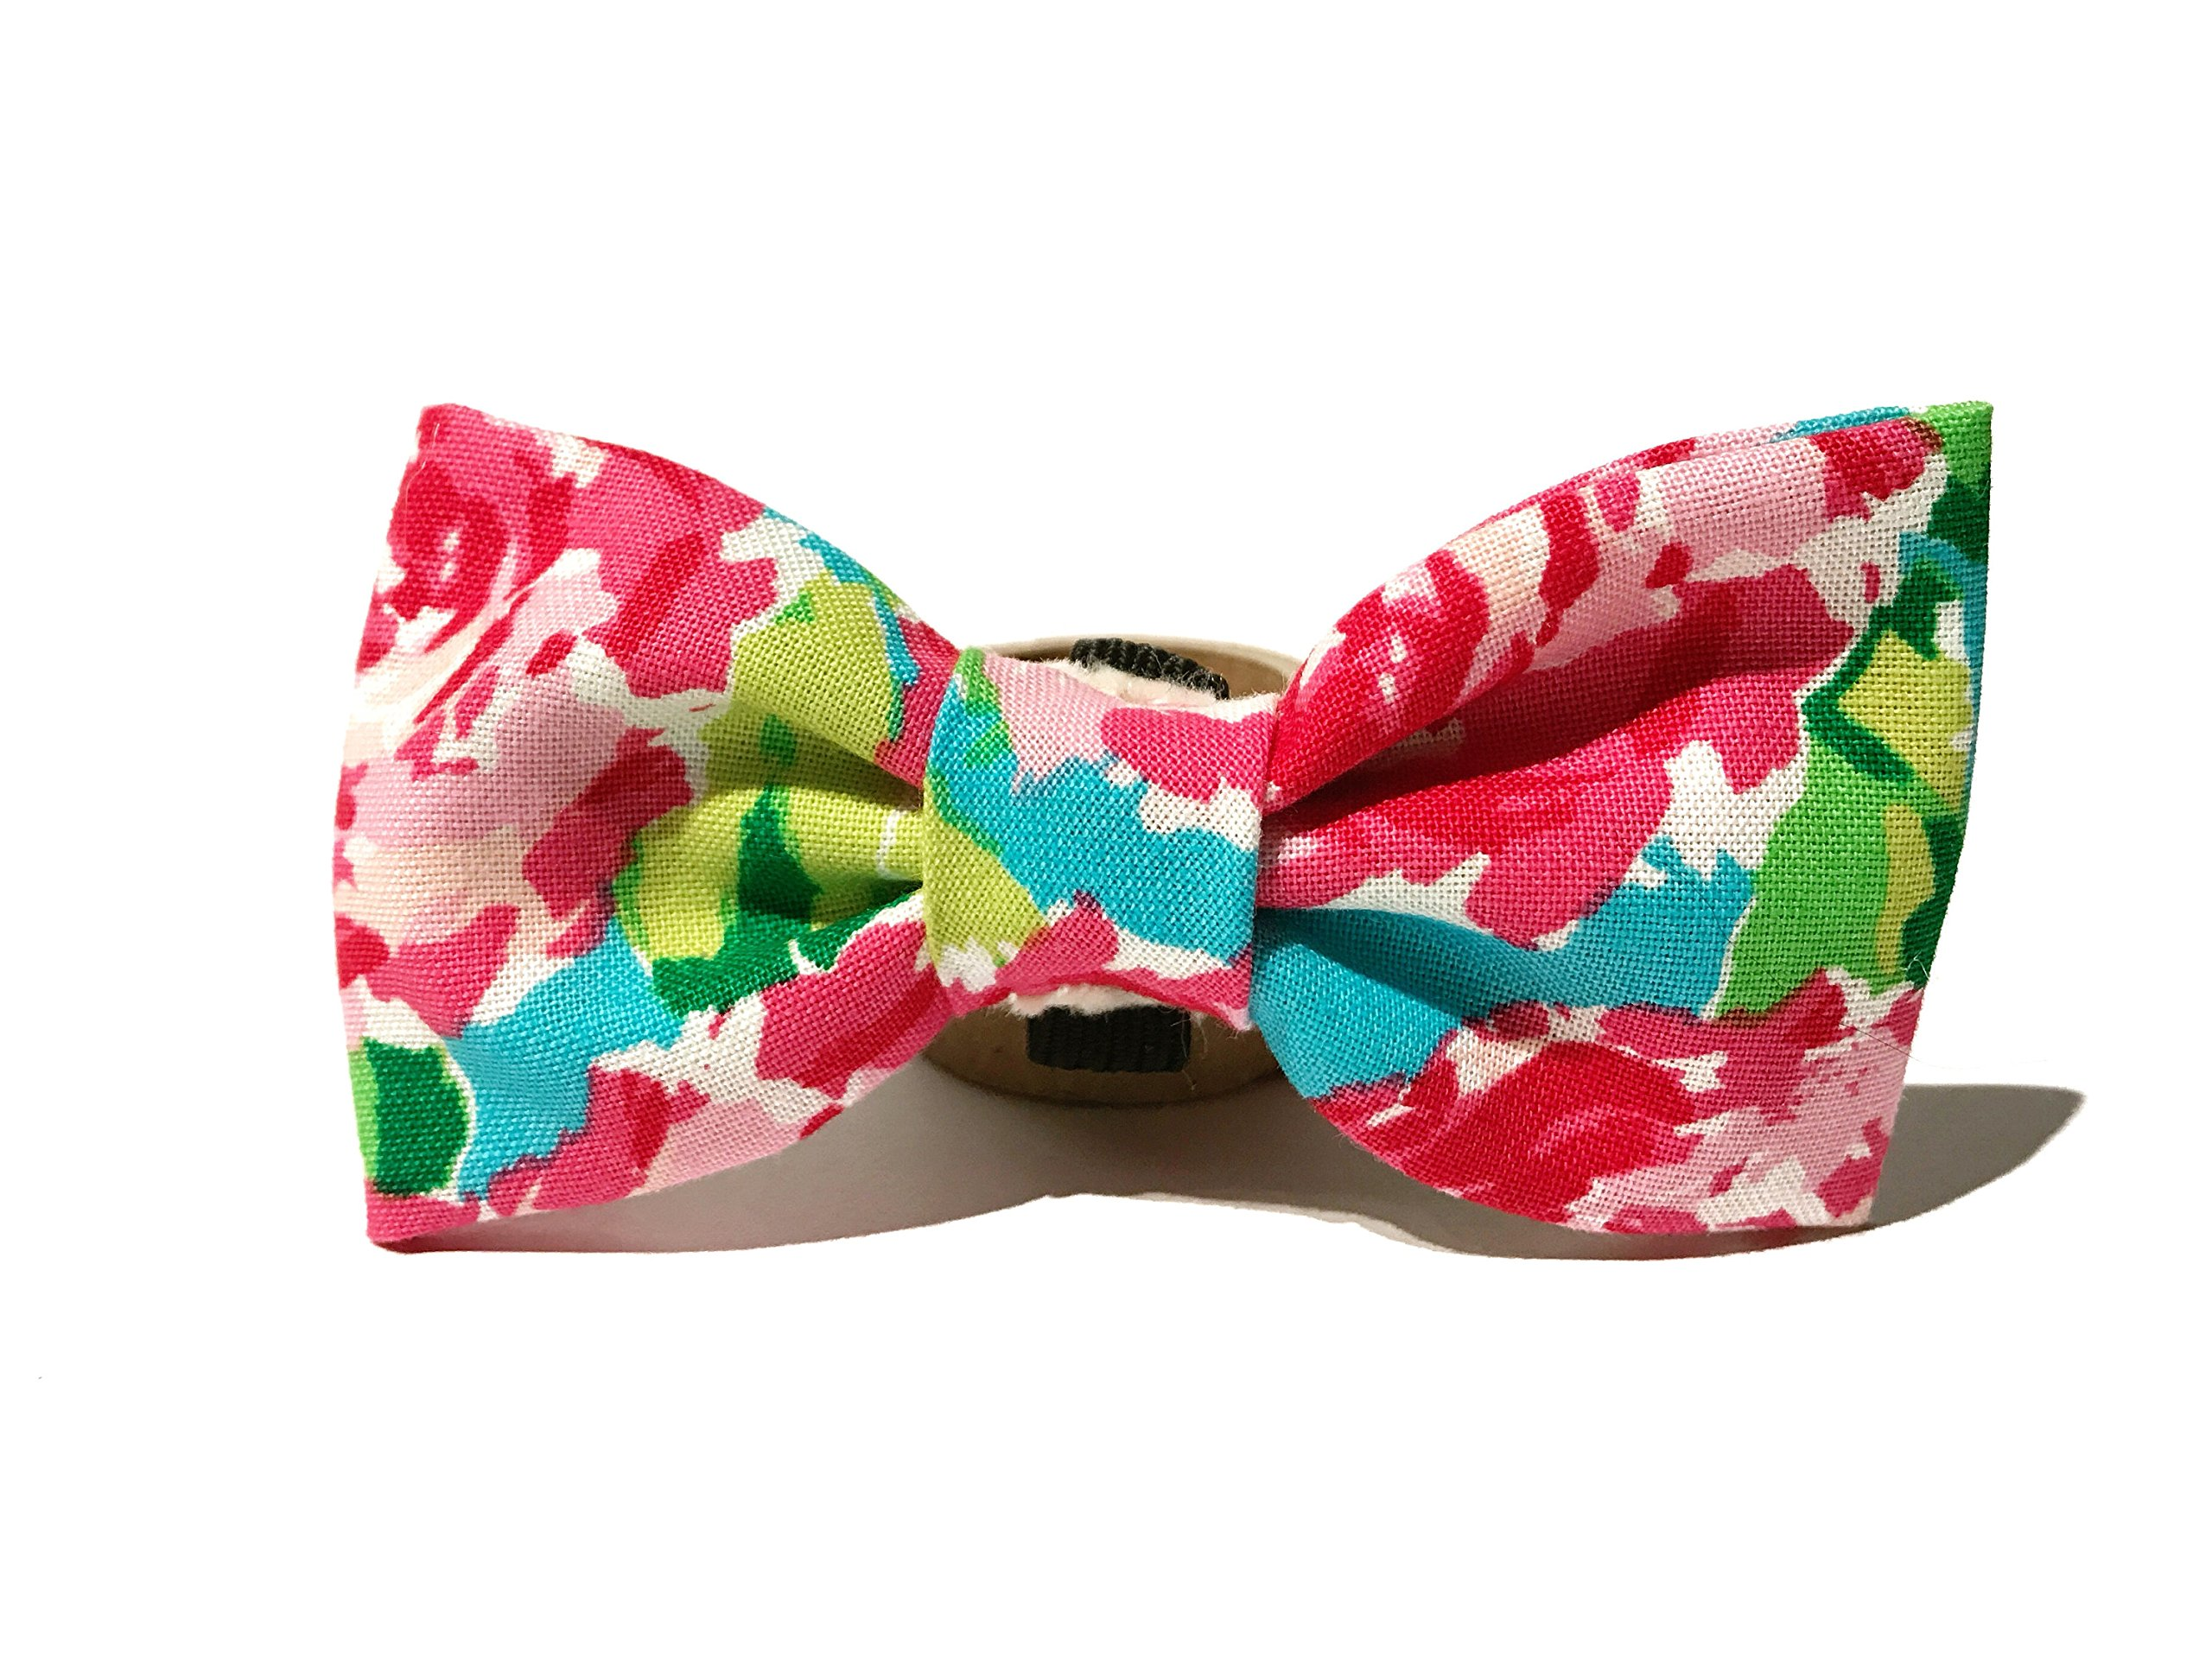 Very Vintage Design Dog Cat Collar Bow Tie Multi Color Hand Crafted Collection Organic Cotton Personalized Adjustable Pet Bowtie